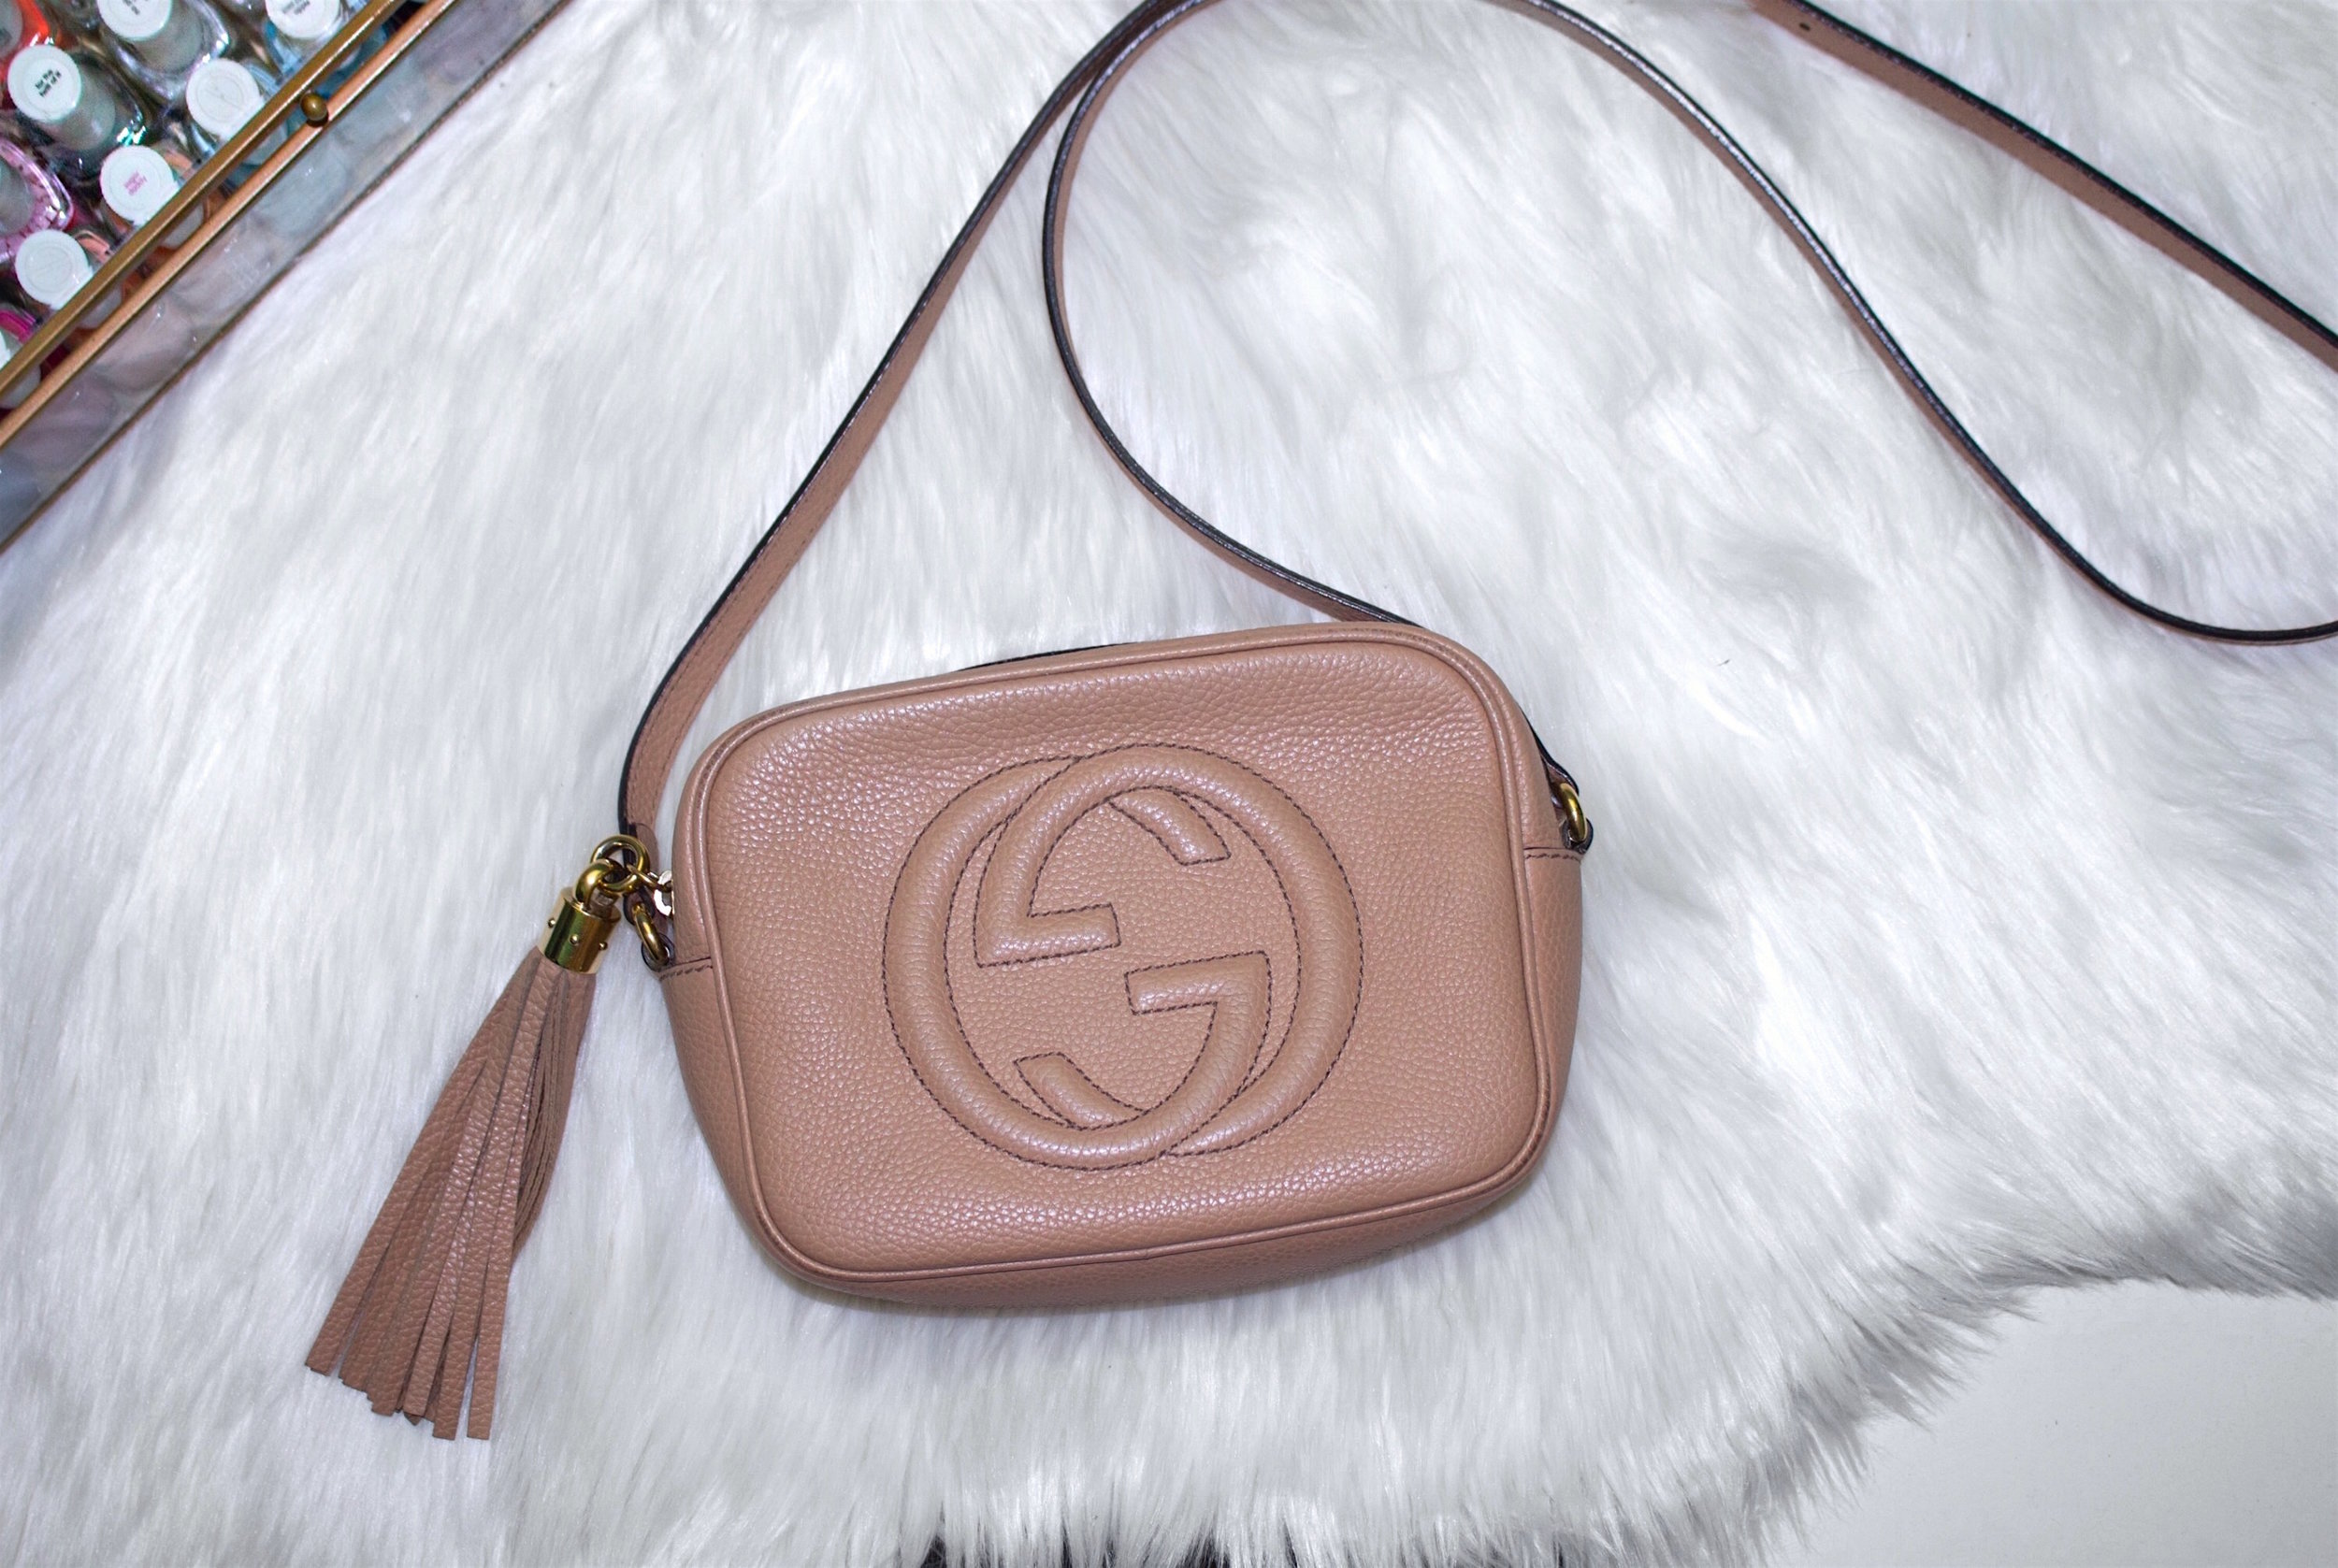 d1c5b8d2a76139 Gucci Soho Disco bag Review — Jasmine Wore What?